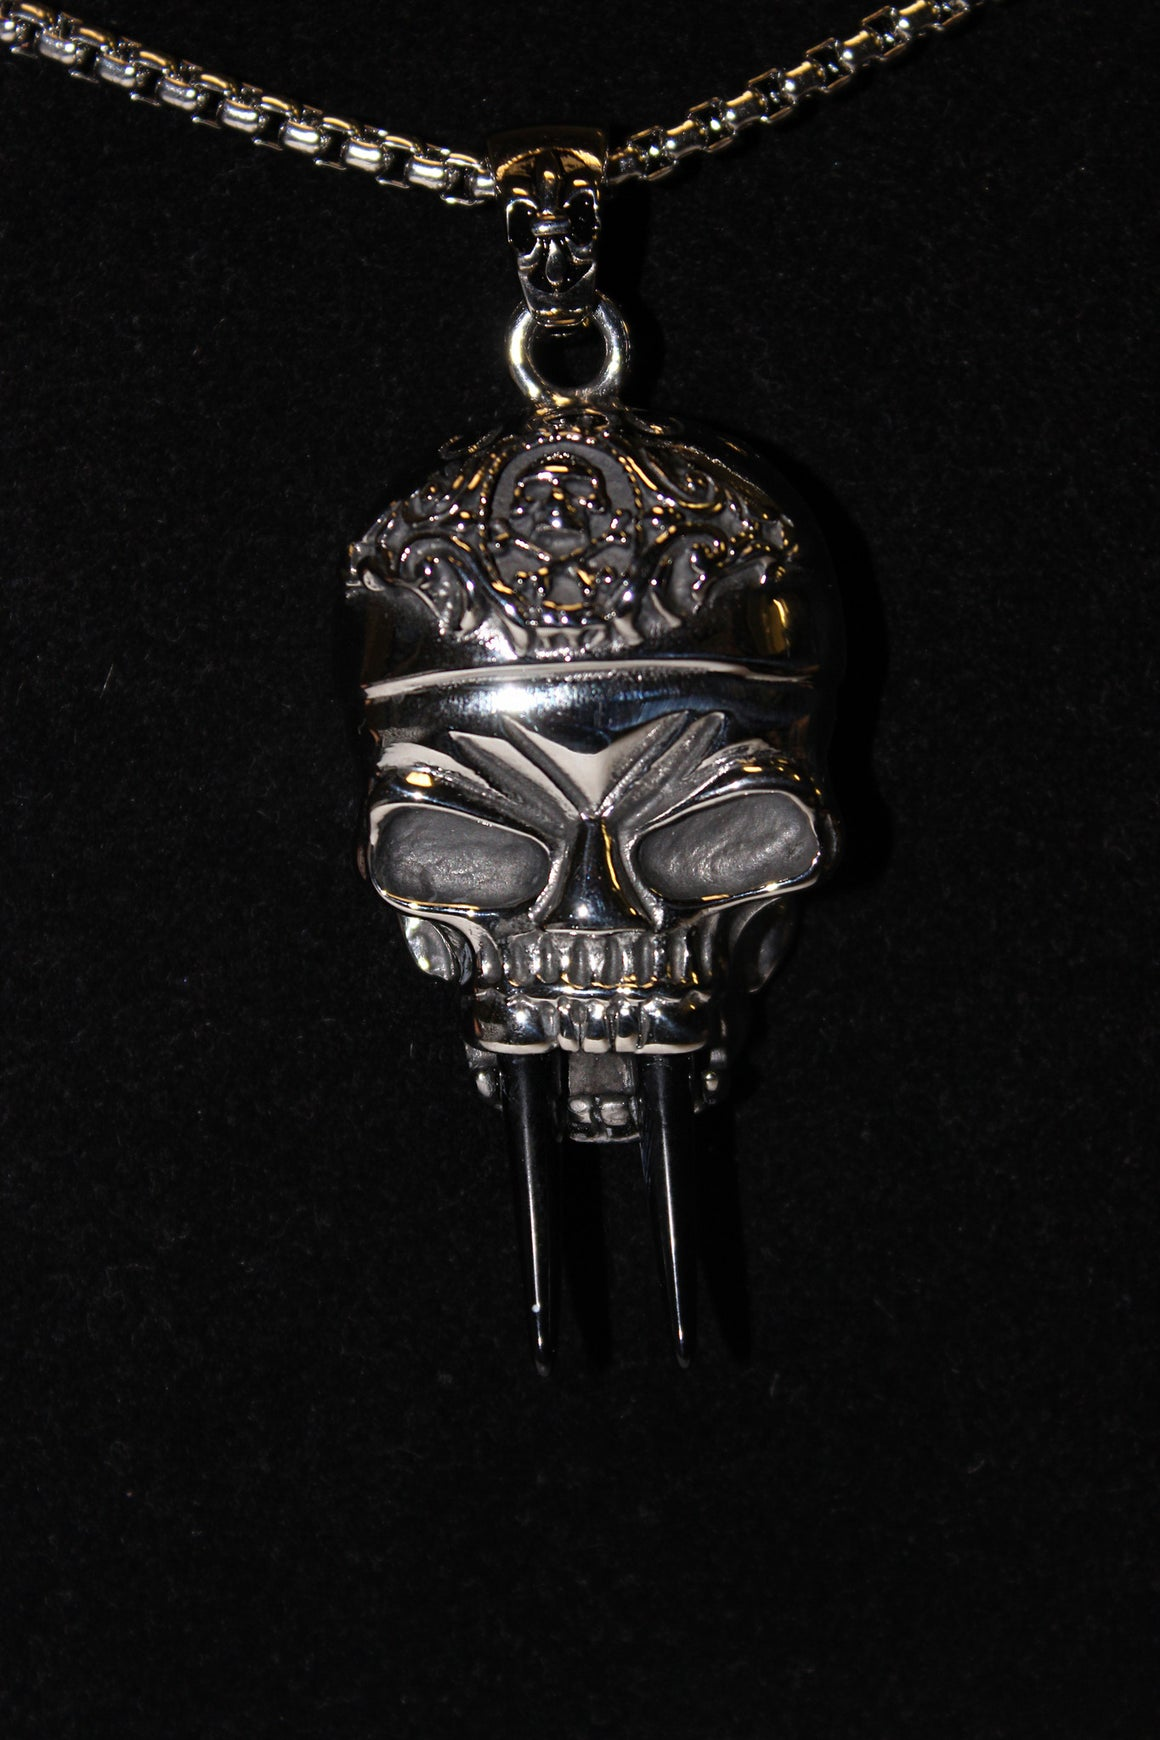 Stainless Steel Large Skull Pendant with teeth - UDINC0465